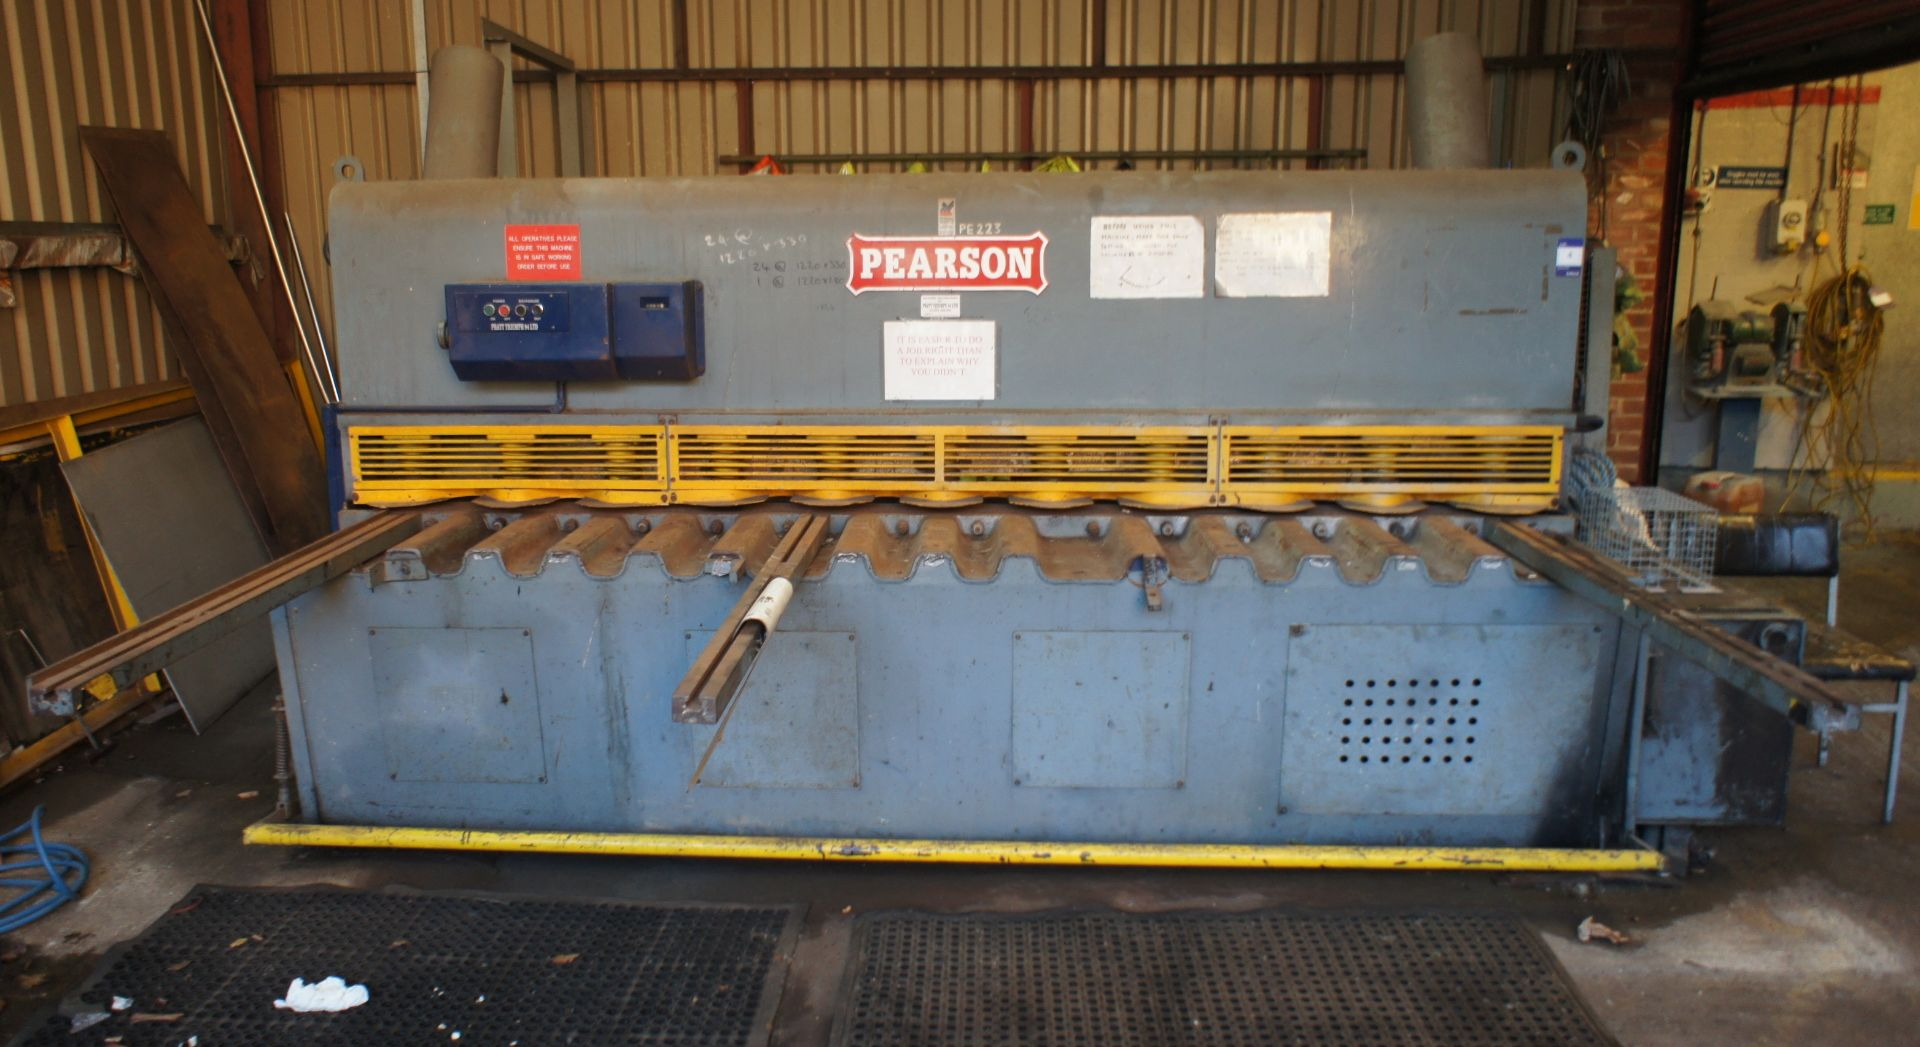 Pearson Hydraulic Guillotine, 3500mm x 10mm, 415v - Image 3 of 6